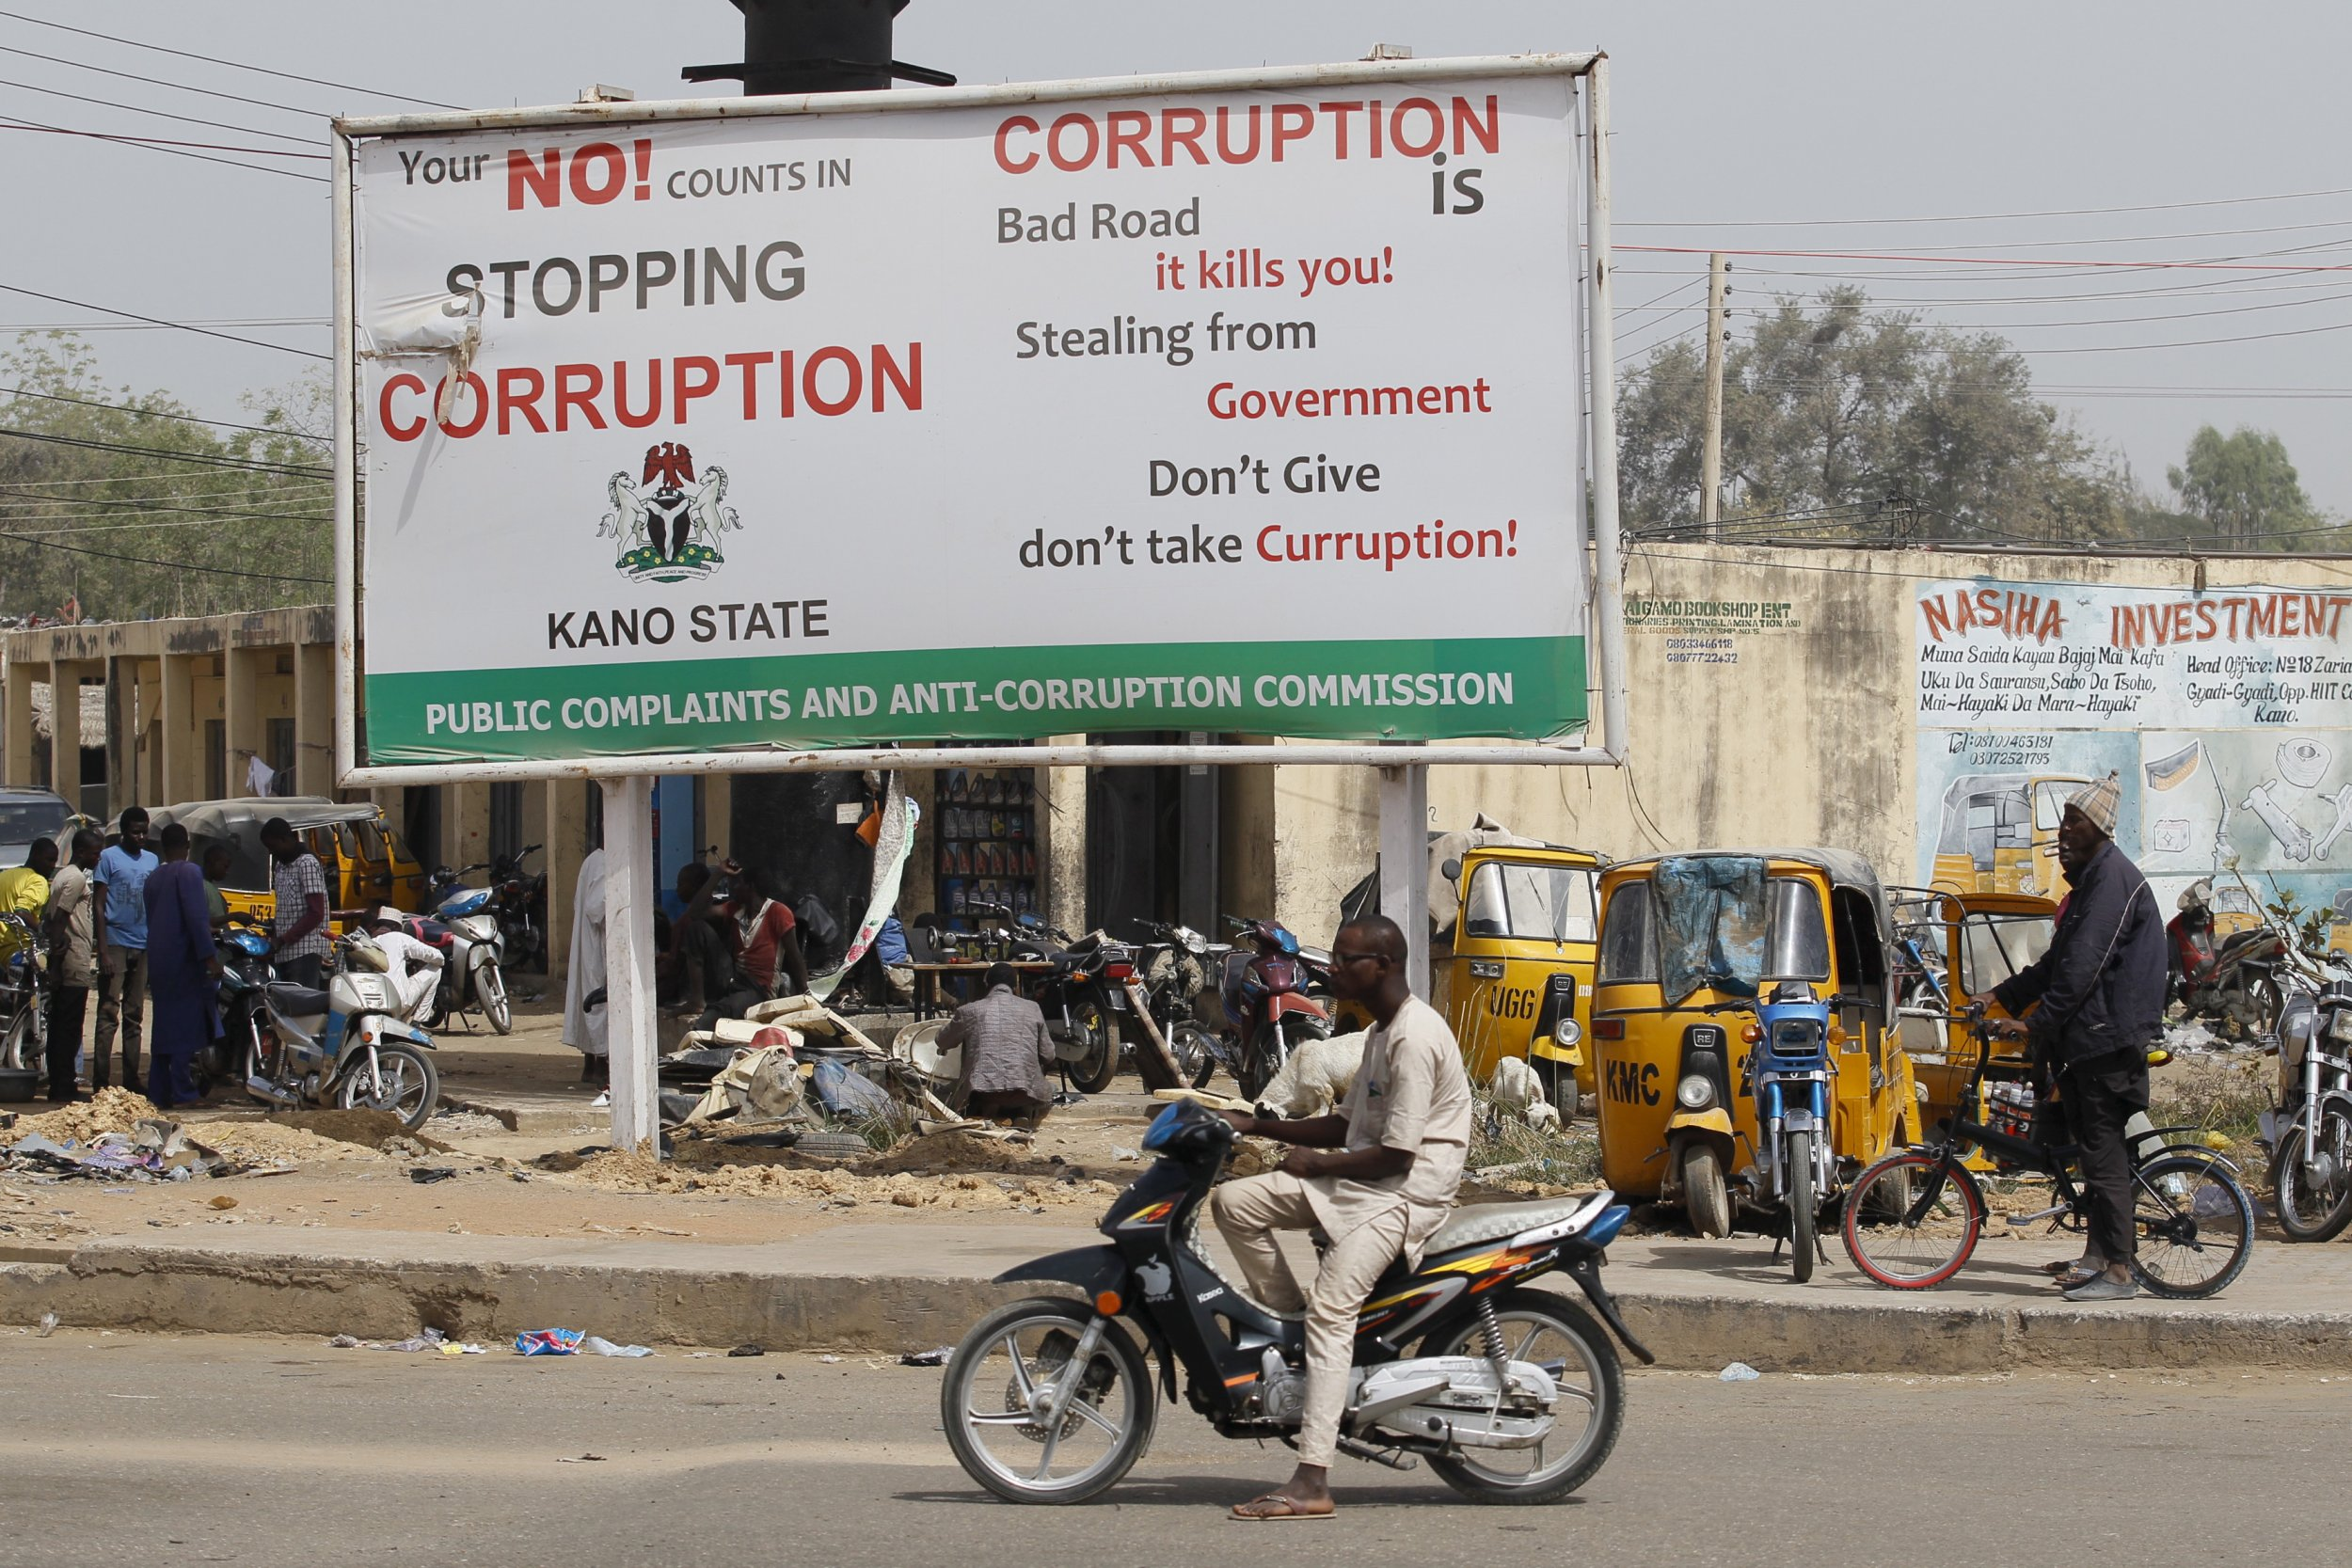 Nigeria anti-corruption poster